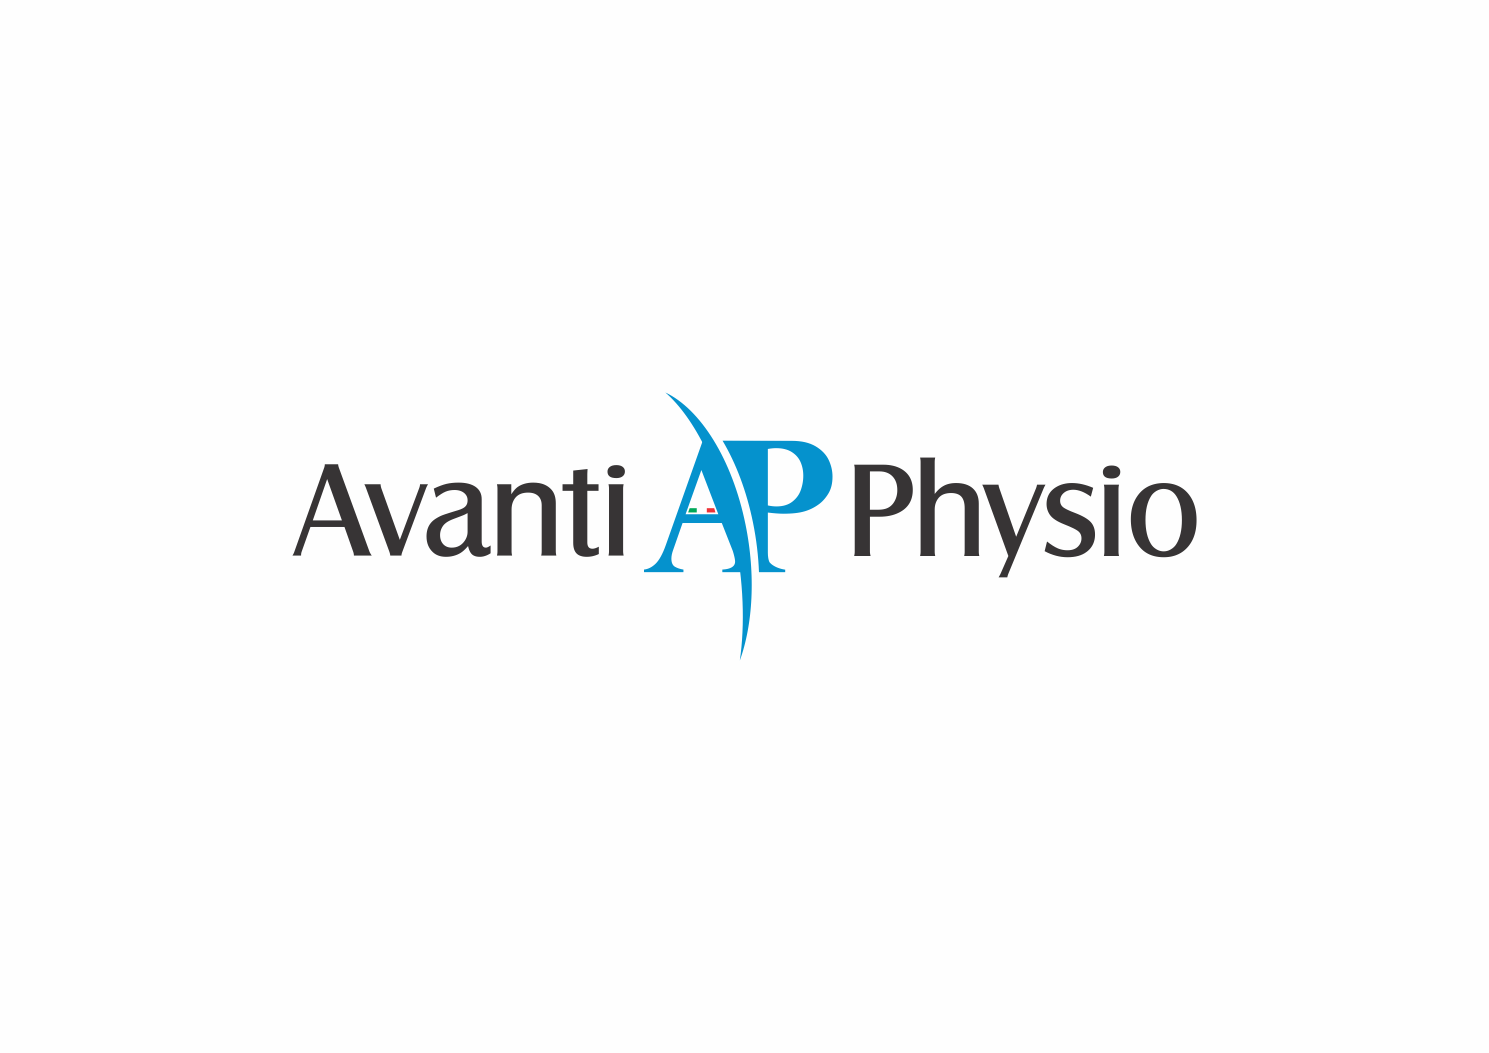 Serious professional physical therapy logo design for avanti logo design by eudo for this project design 16083223 m4hsunfo